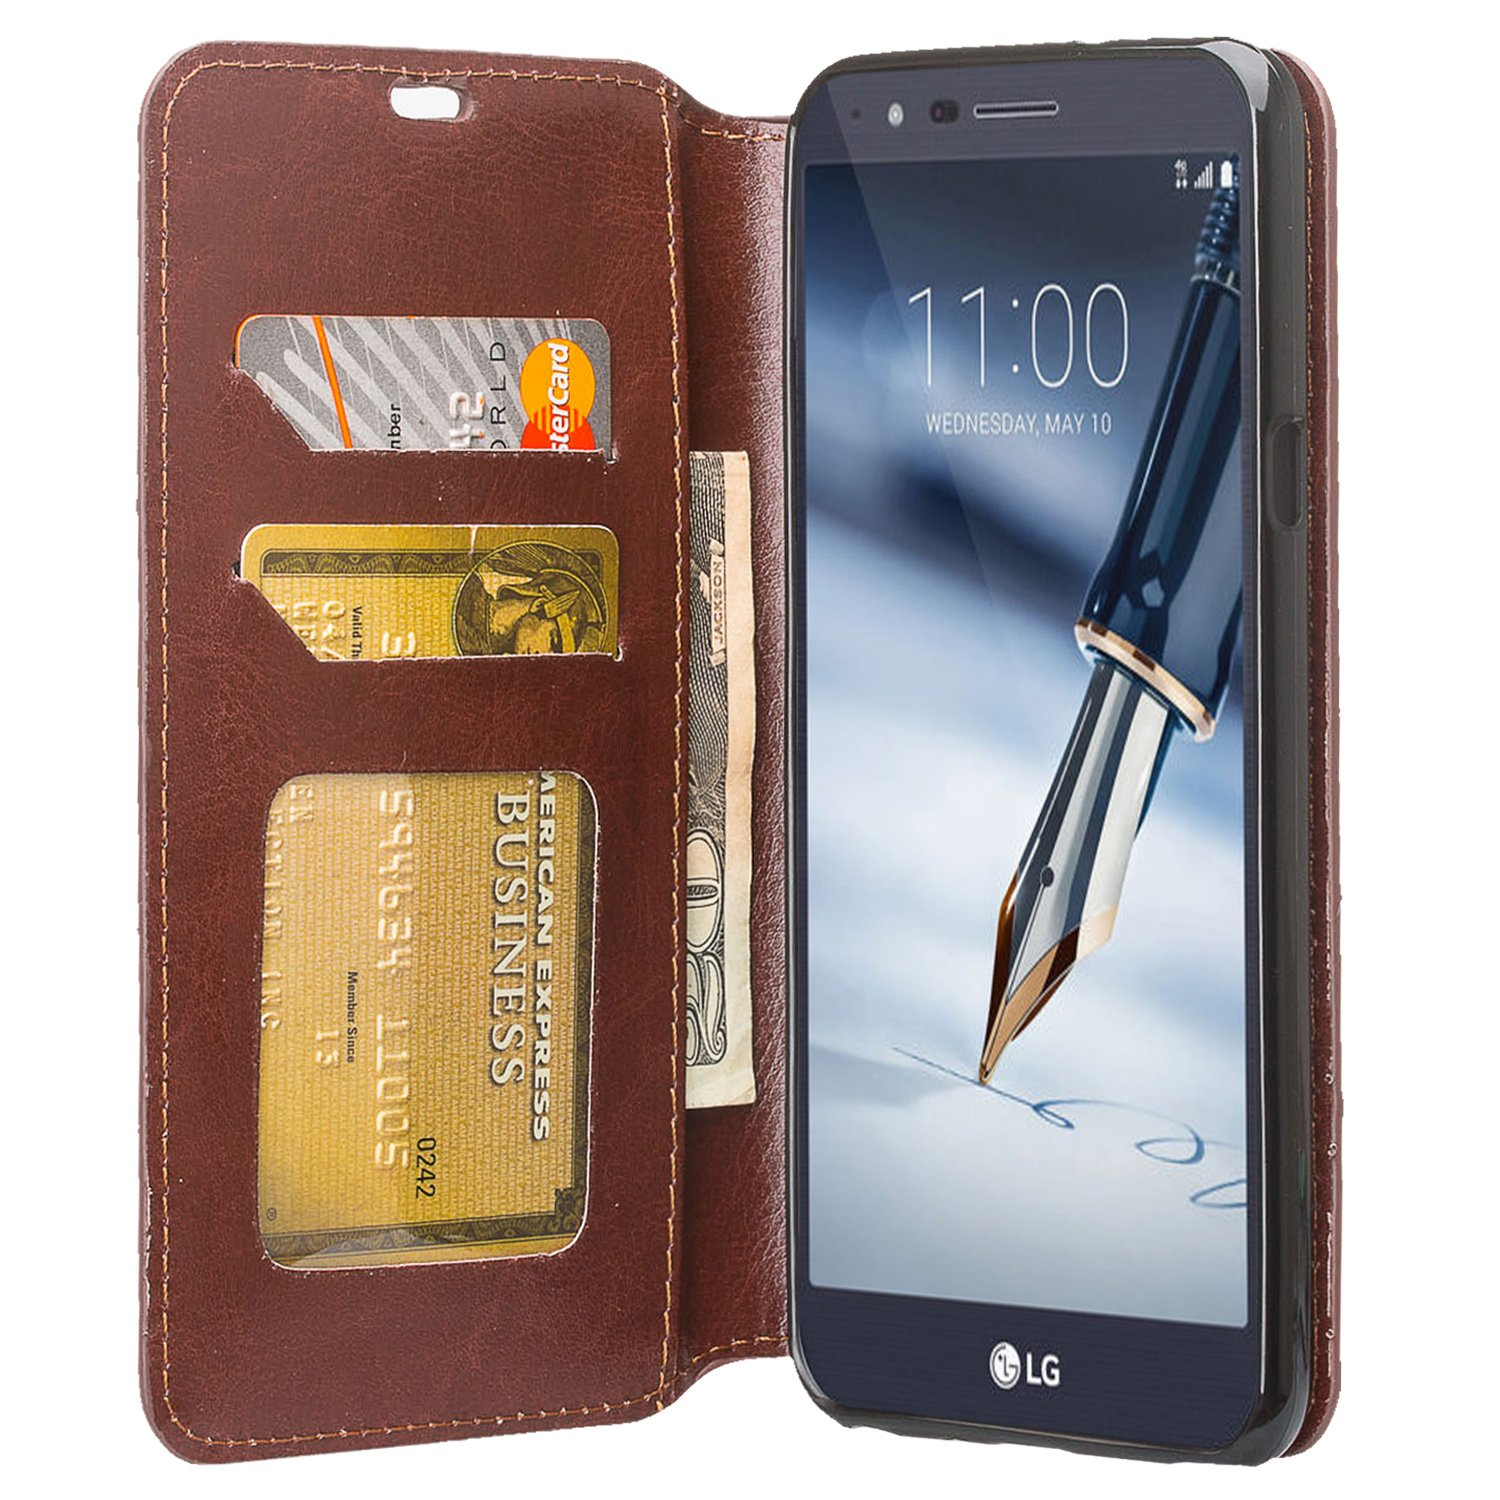 a1511a4bb2 Amazon.com: LG Stylo 4 Case, LG Stylo 4 Case Wallet [Kickstand] Pu Leather  Wallet Case Cover with ID&Credit Card Slot Phone Case For LG Stylo 4/Stylus  4 ...